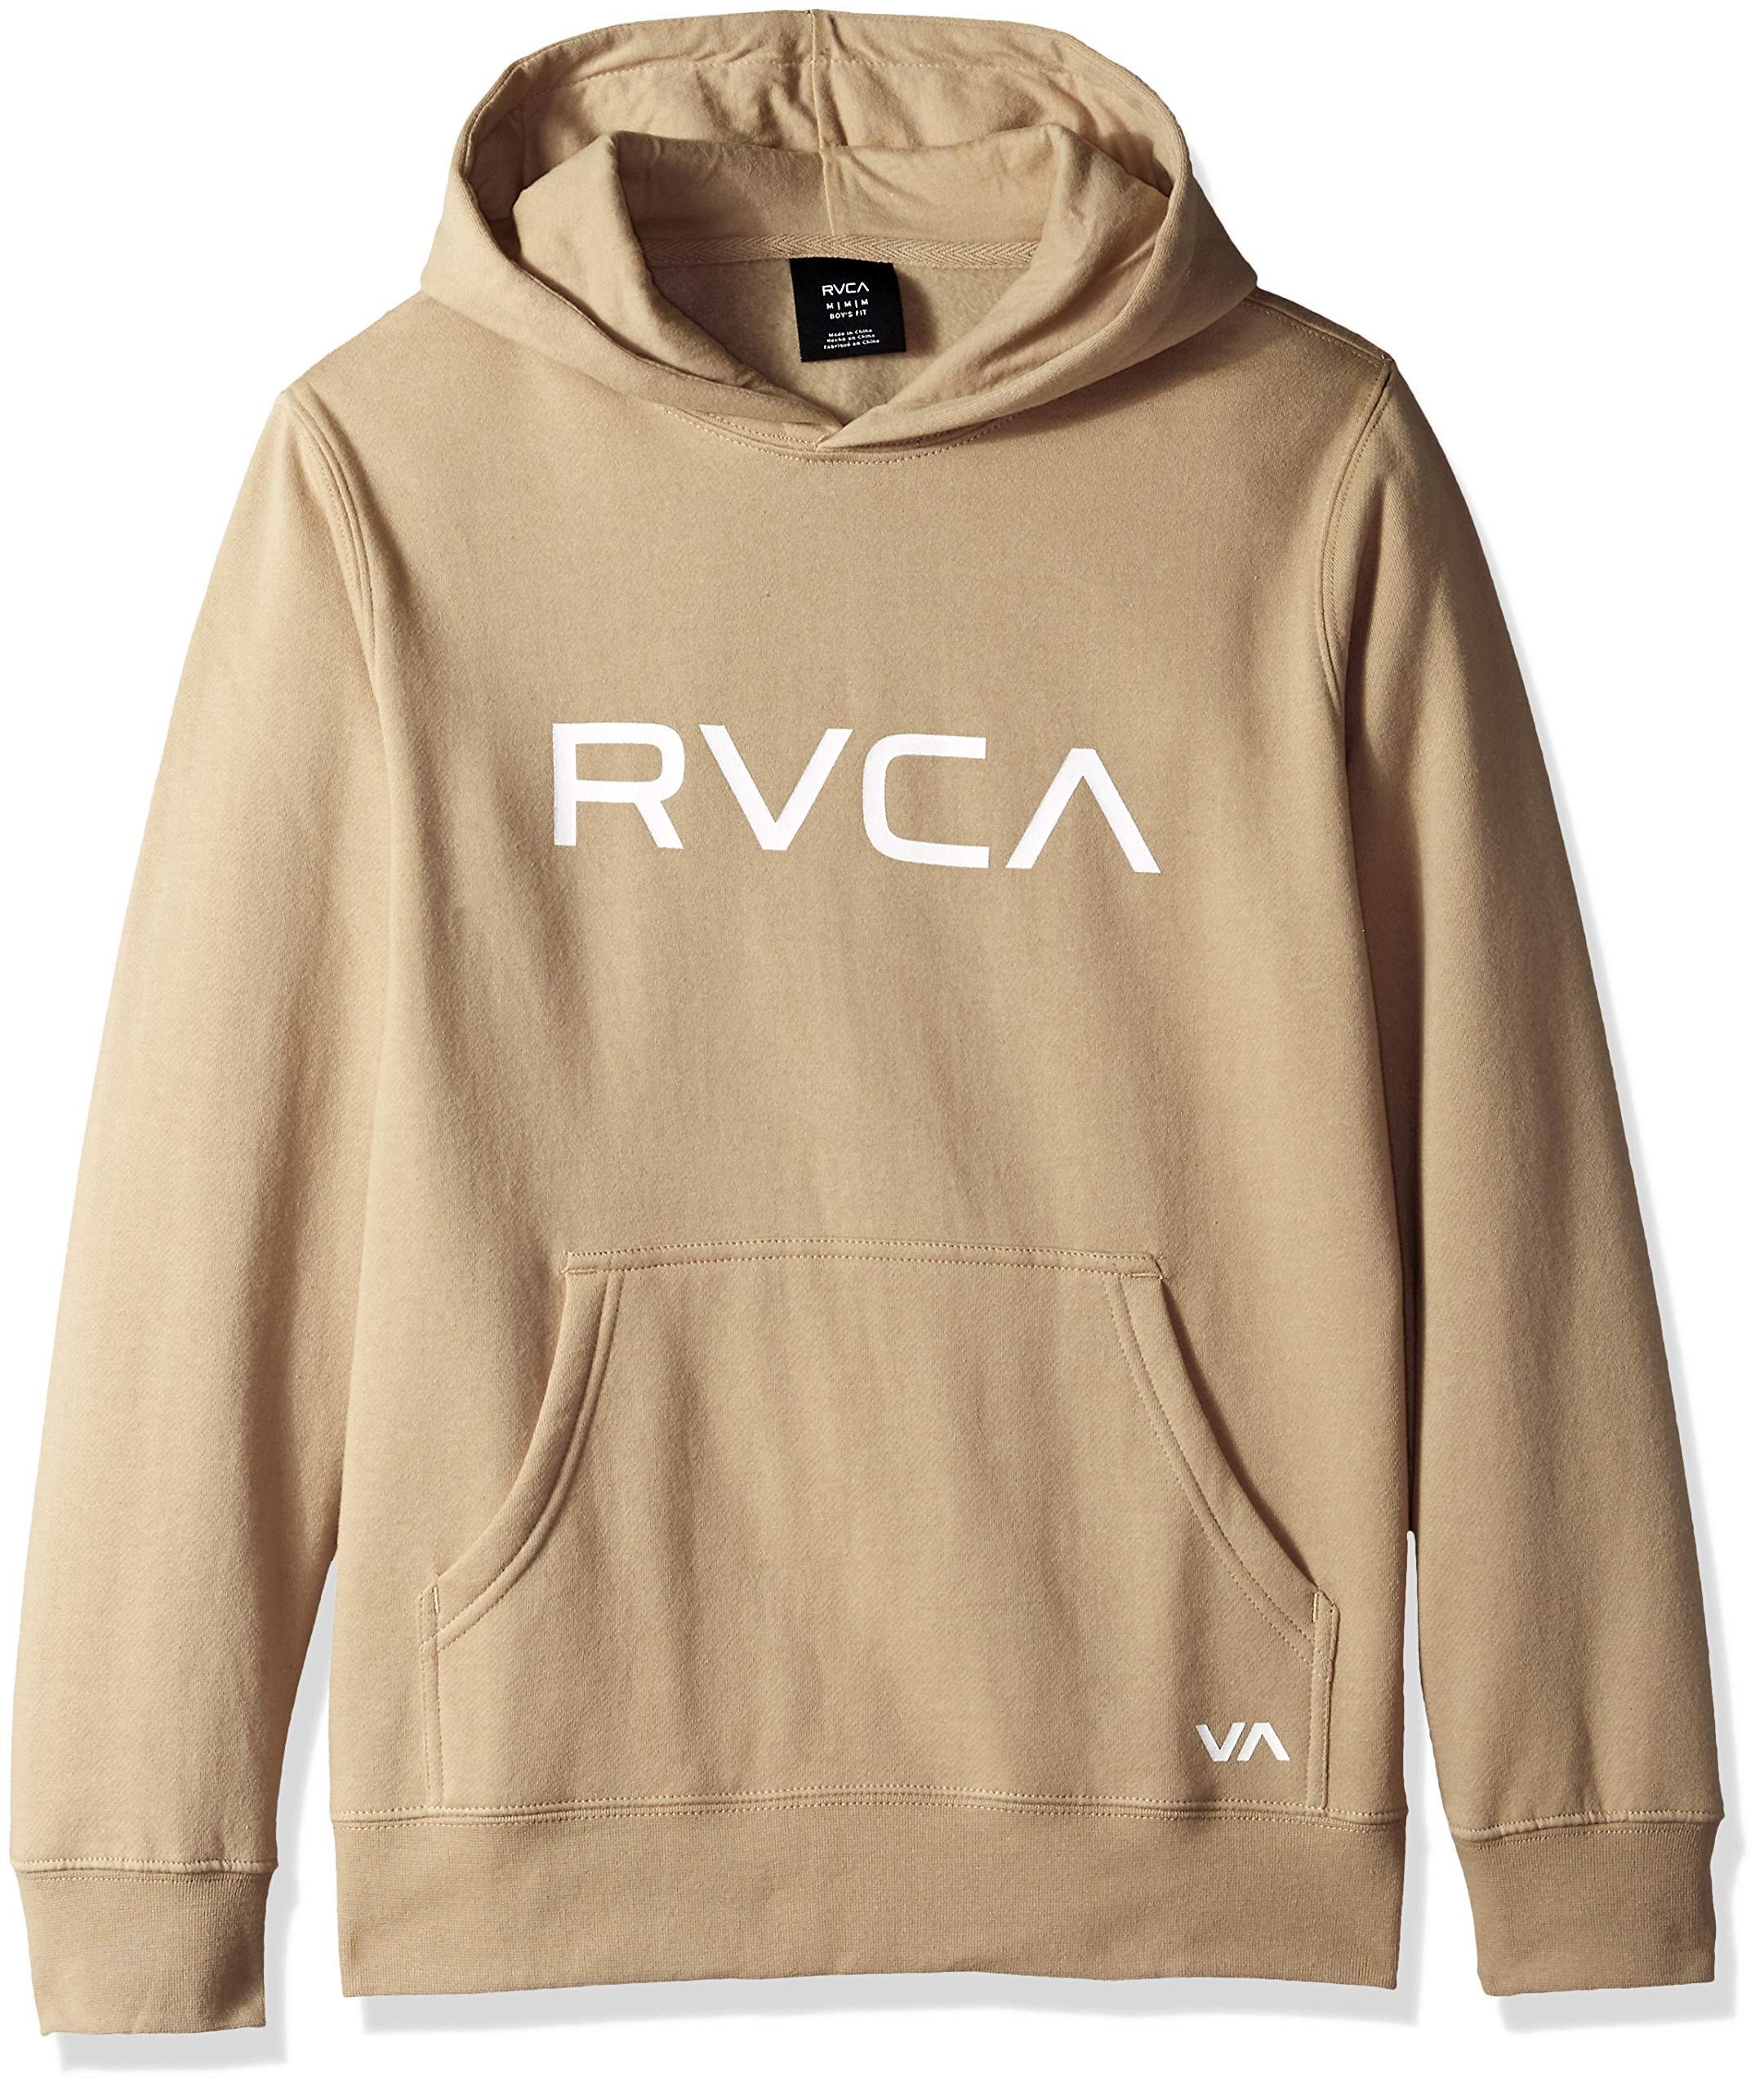 RVCA Boys Big Pullover Hooded Sweatshirt, Khaki, S